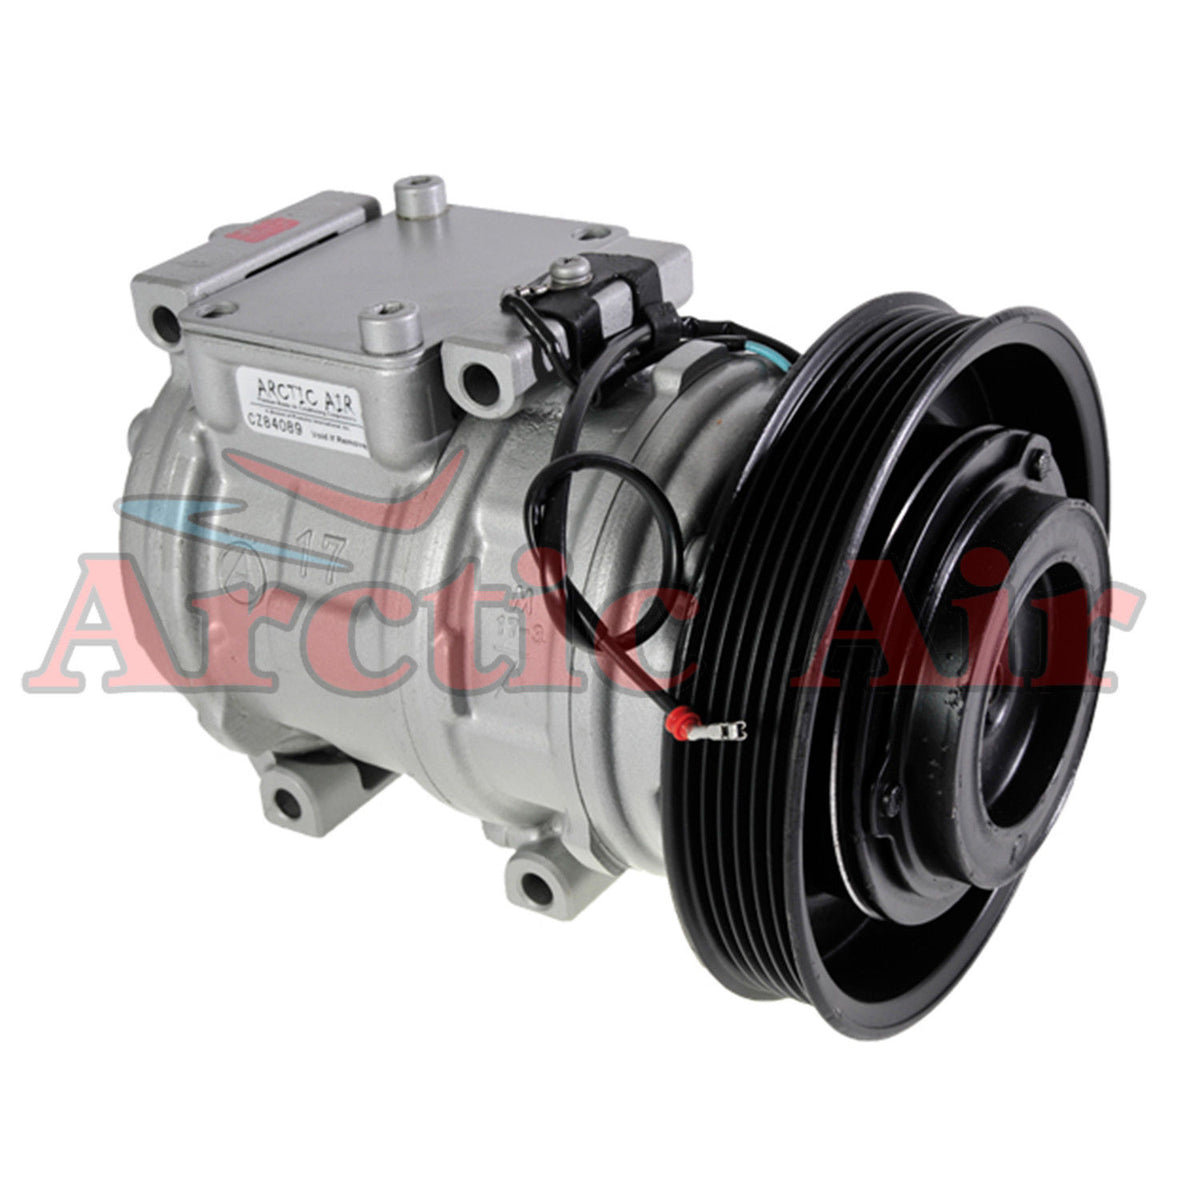 AC Compressor Fits 1998-1999 Acura CL And 1998-2002 Honda